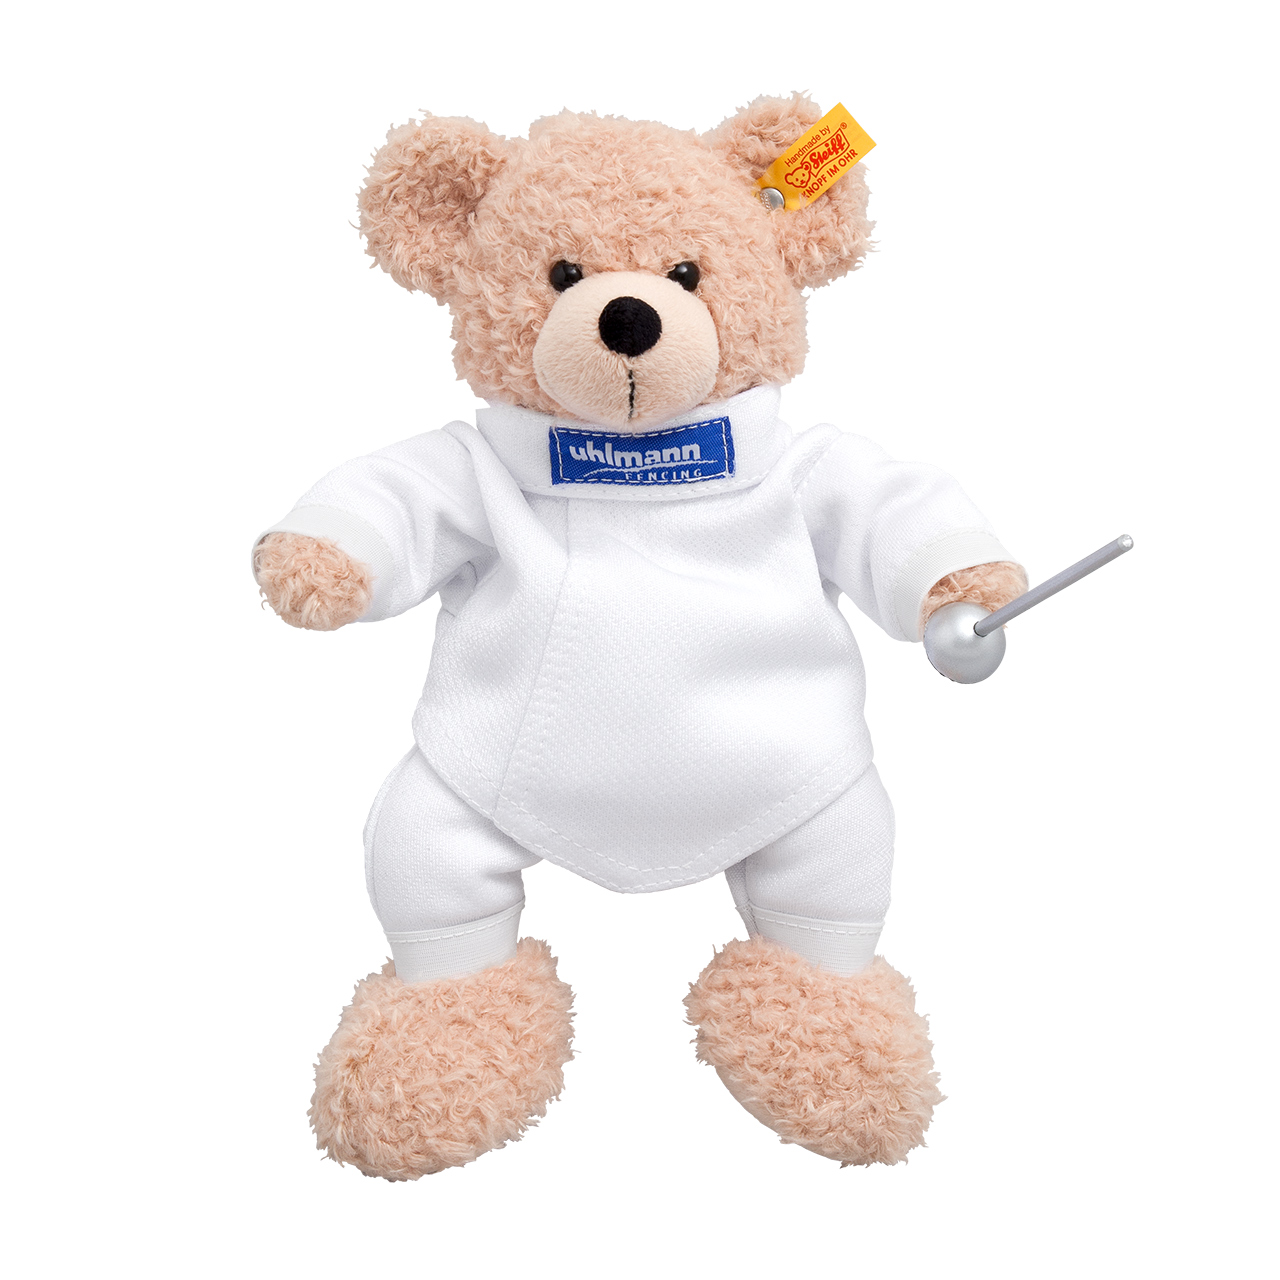 """Steiff""-bear with fencing suit"